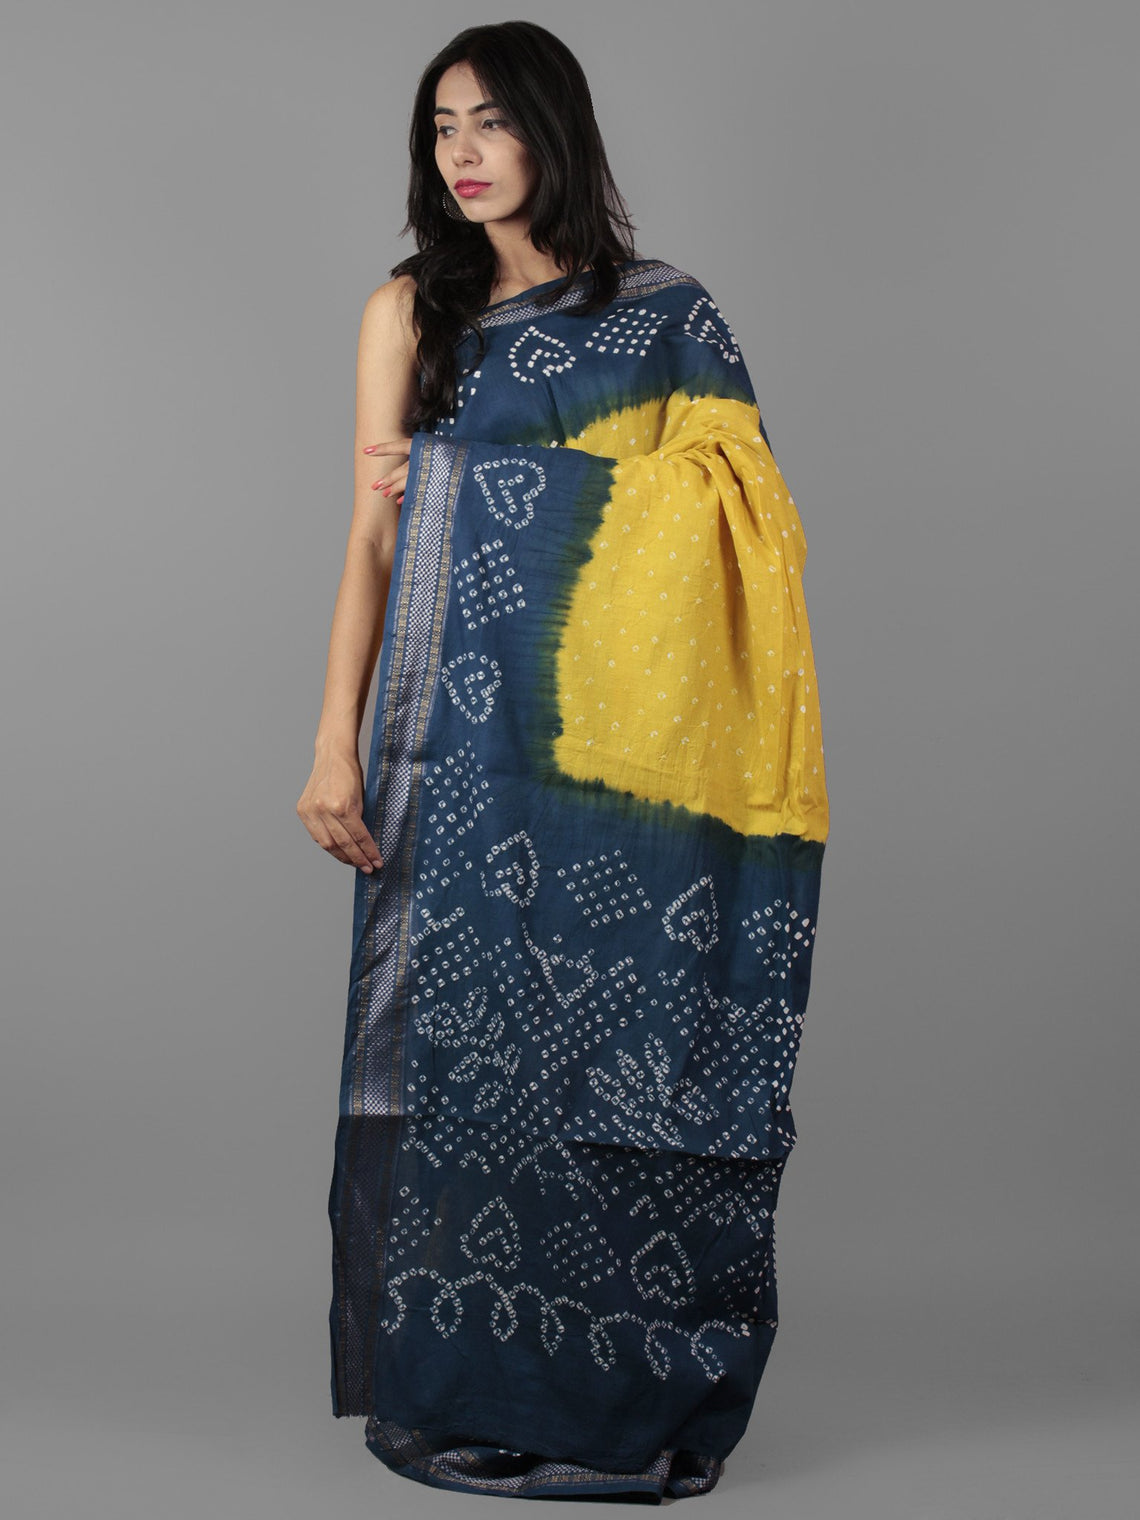 Yellow Blue Ivory Hand Tie & Dye Bandhej Glace Cotton Saree With Resham Border - S031702007